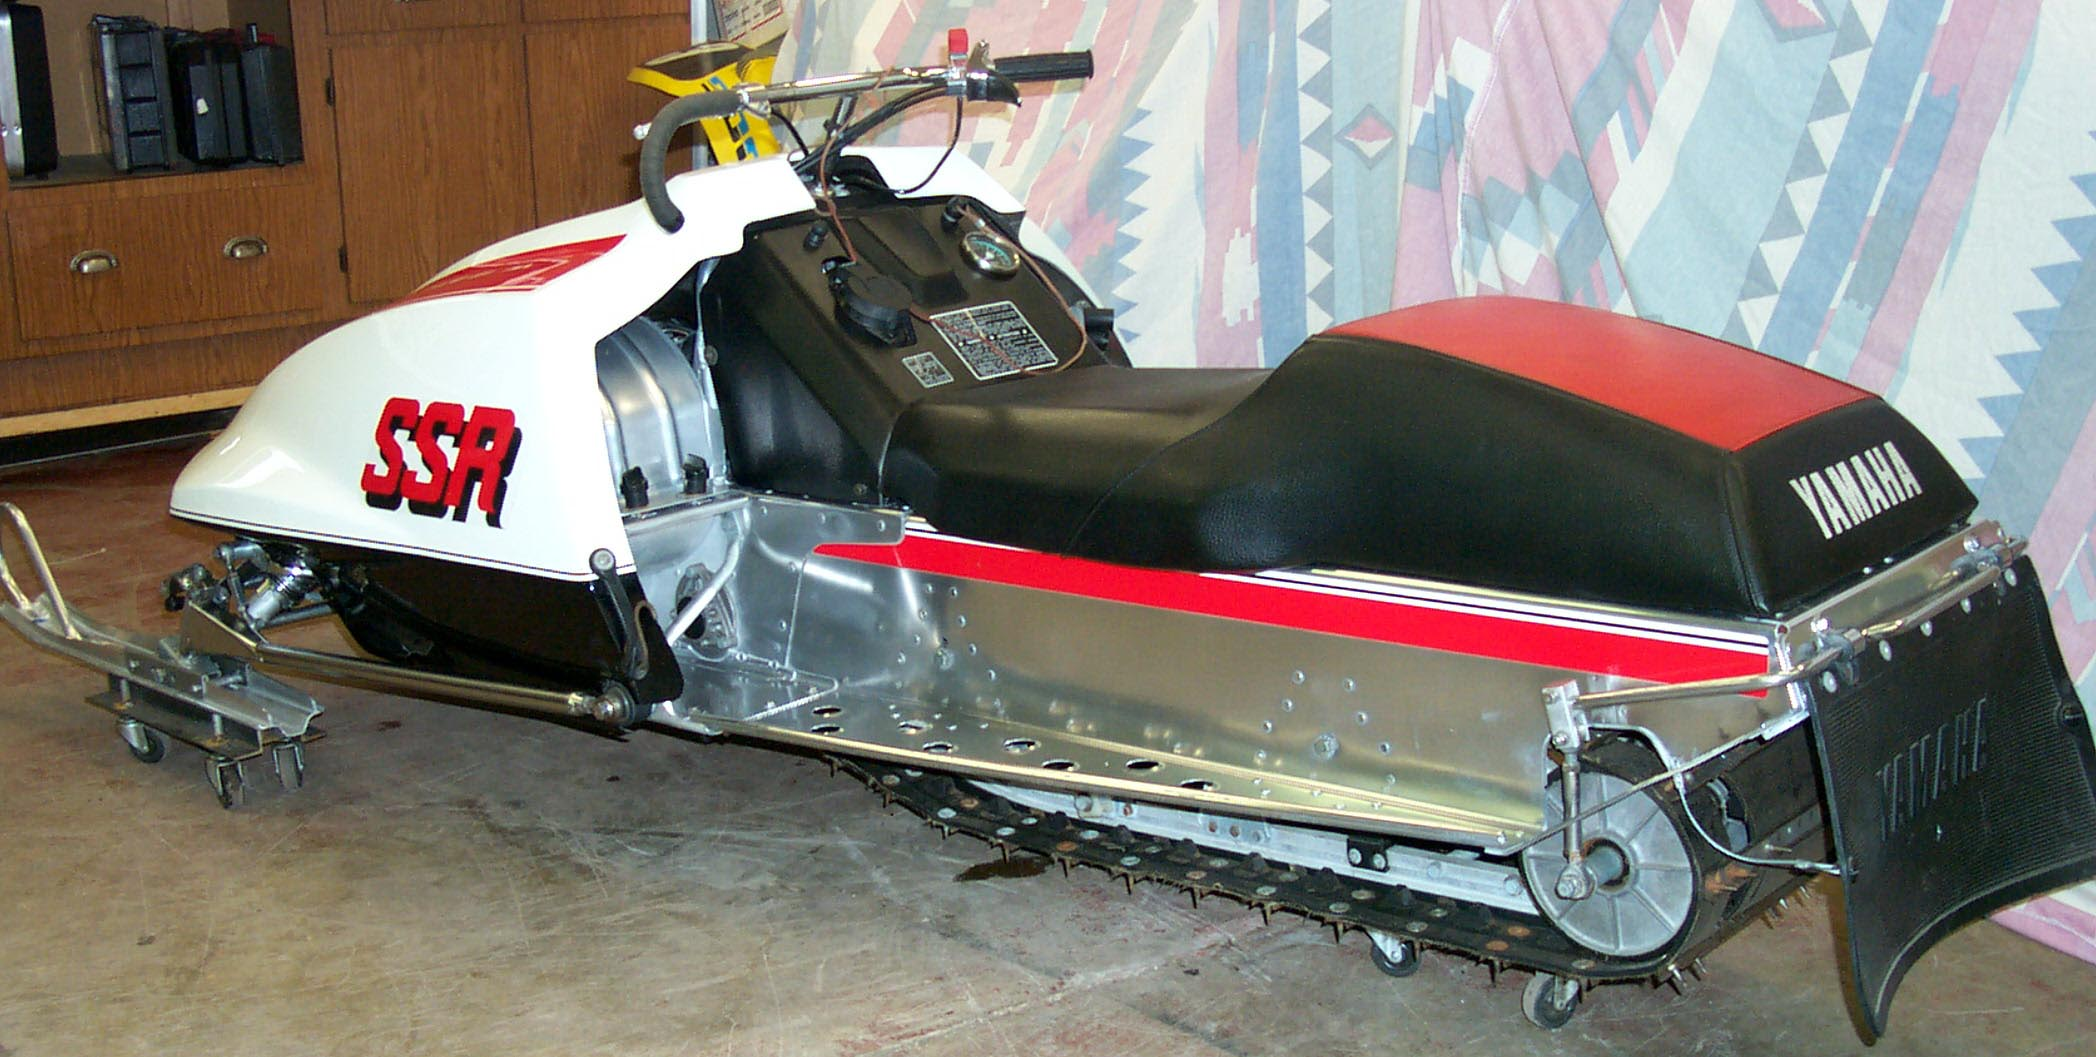 What Year Was The Yamaha Warrior Made